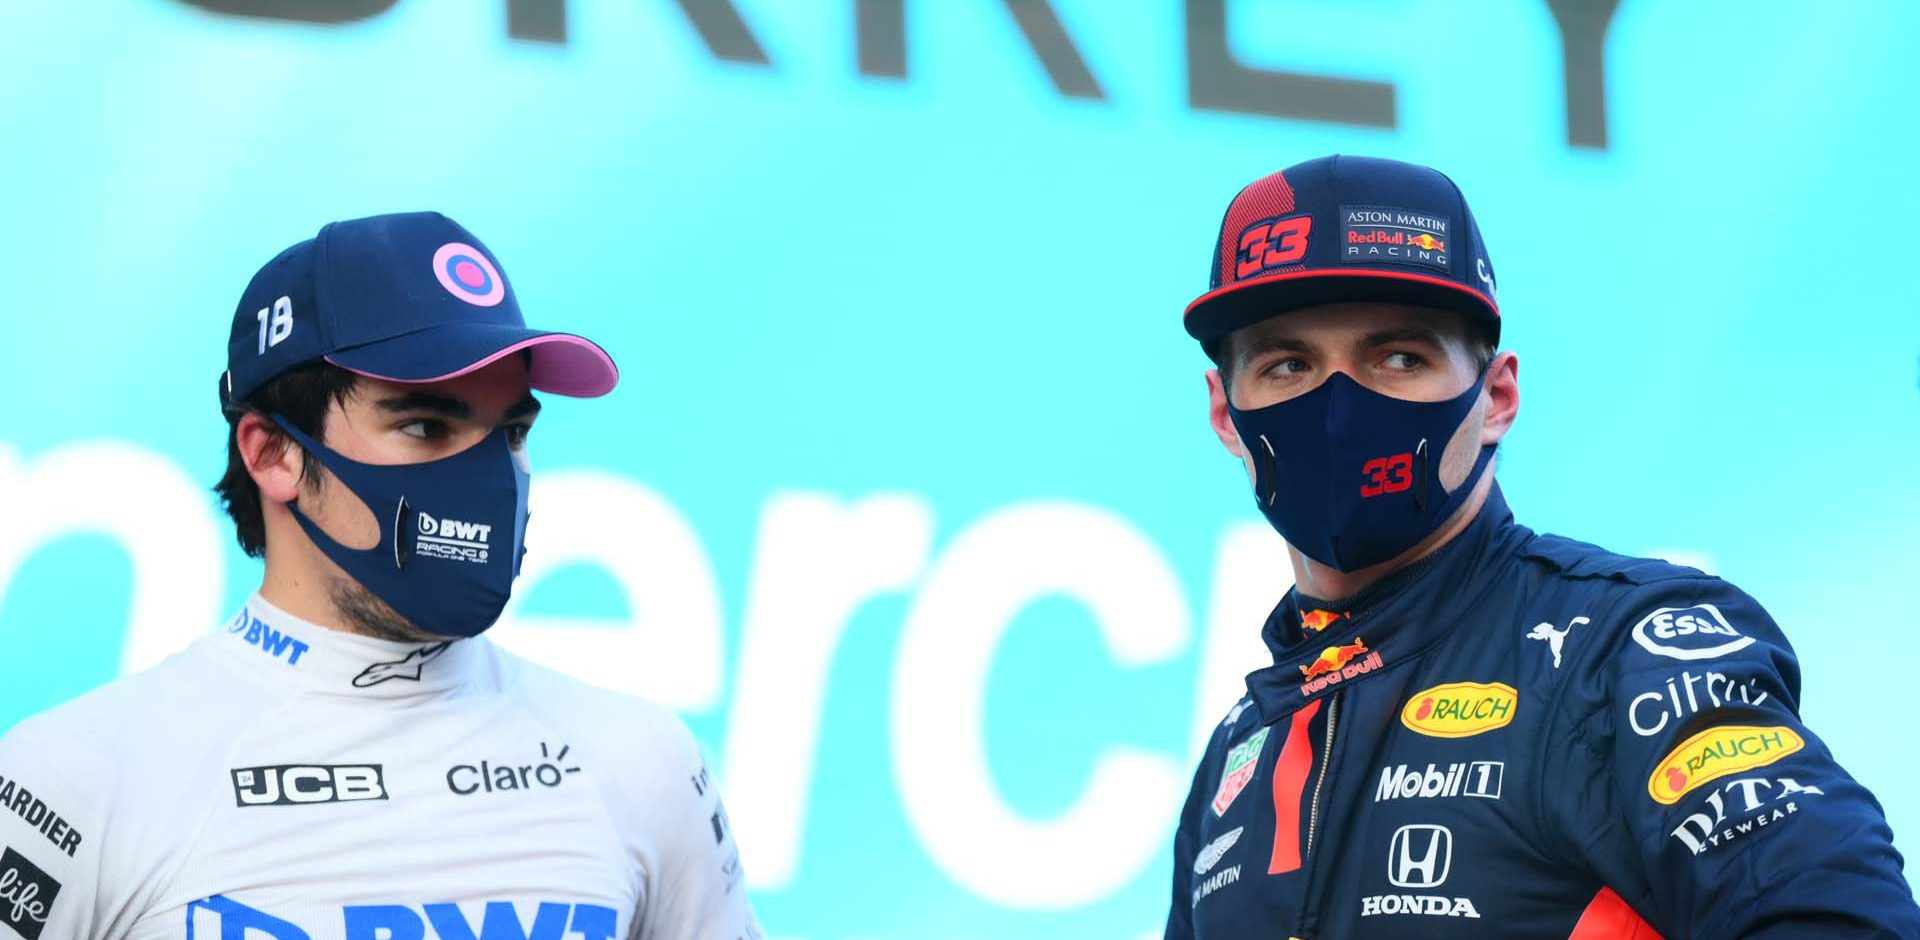 ISTANBUL, TURKEY - NOVEMBER 14: Pole position qualifier Lance Stroll of Canada and Racing Point speaks with second placed qualifier Max Verstappen of Netherlands and Red Bull Racing in parc ferme during qualifying ahead of the F1 Grand Prix of Turkey at Intercity Istanbul Park on November 14, 2020 in Istanbul, Turkey. (Photo by Clive Mason/Getty Images)